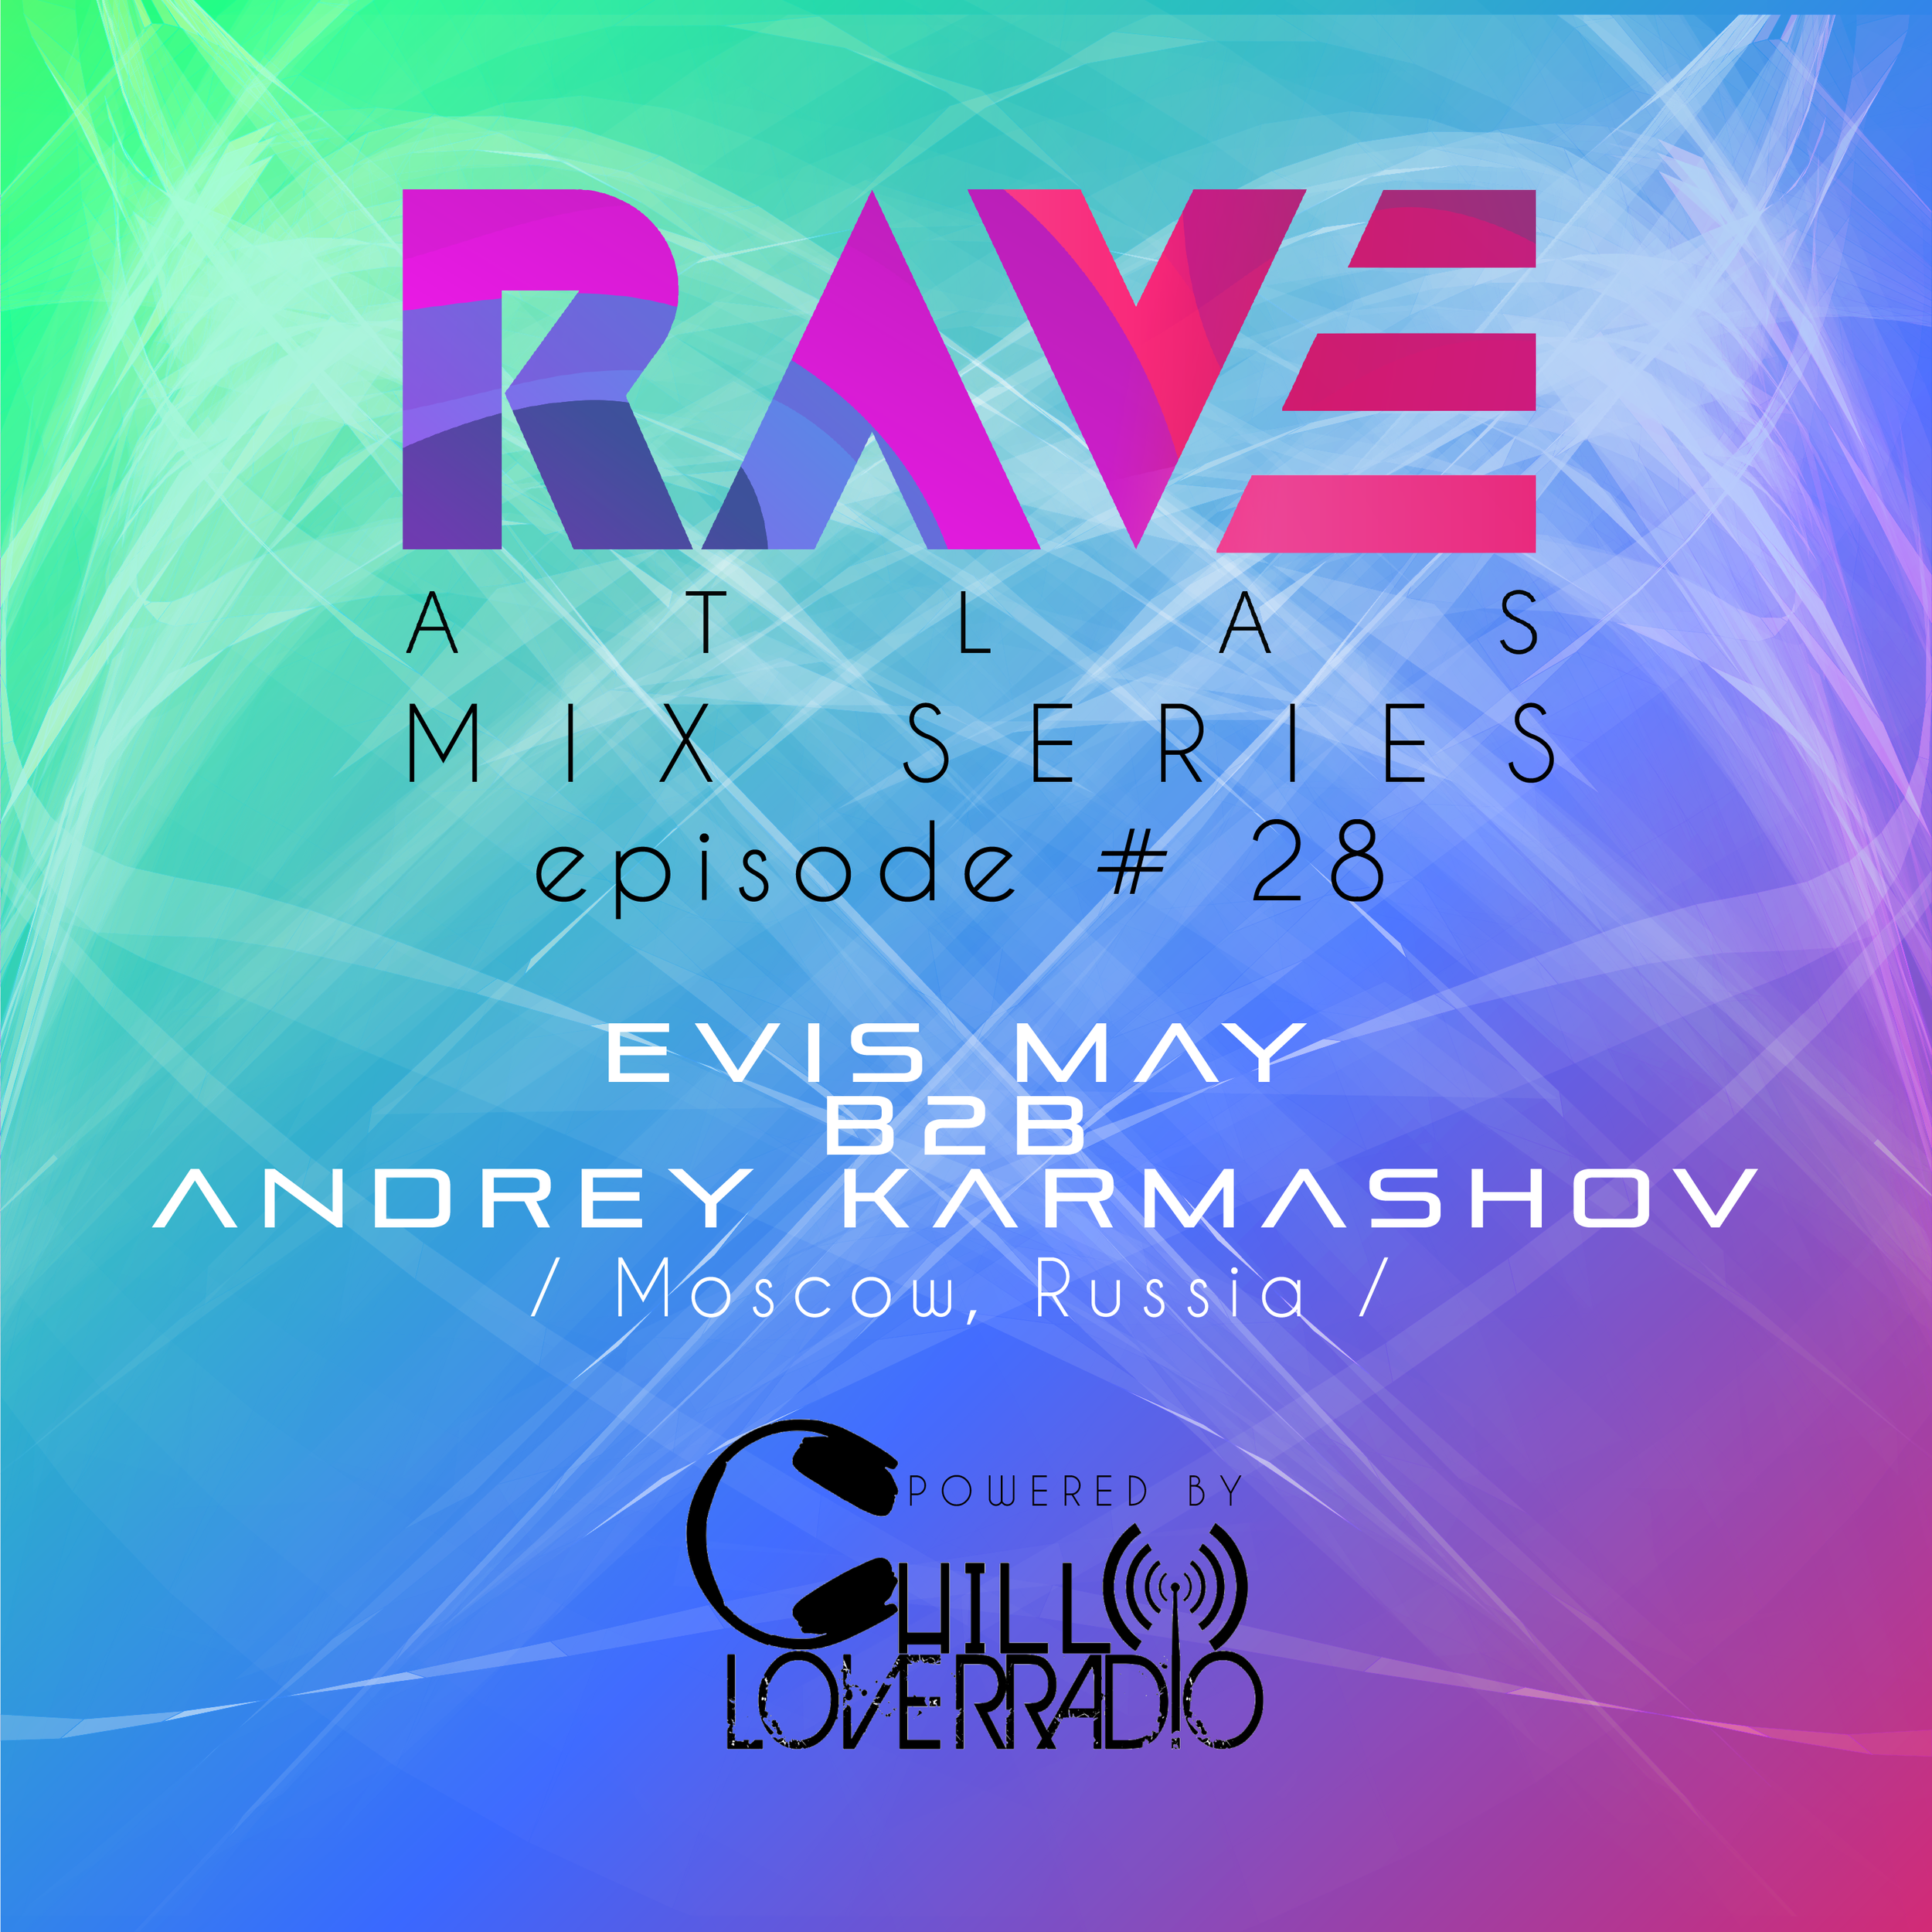 RAVE ATLAS MIX SERIES EP 028 - Moscow, Russia